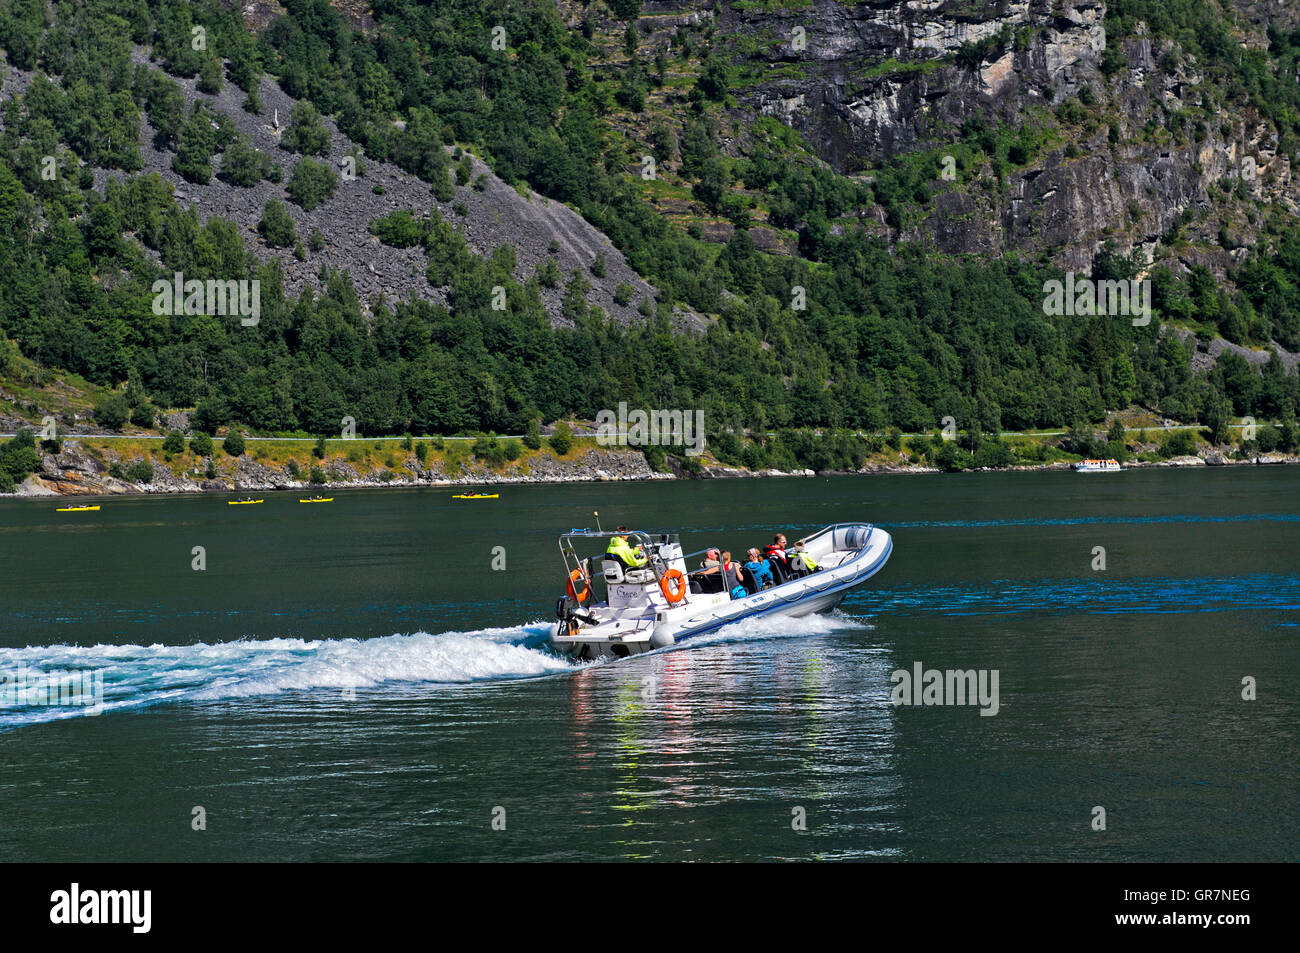 Inflatable Boat With Passengers In The Geiranger Fjord, Geiranger, Norway - Stock Image